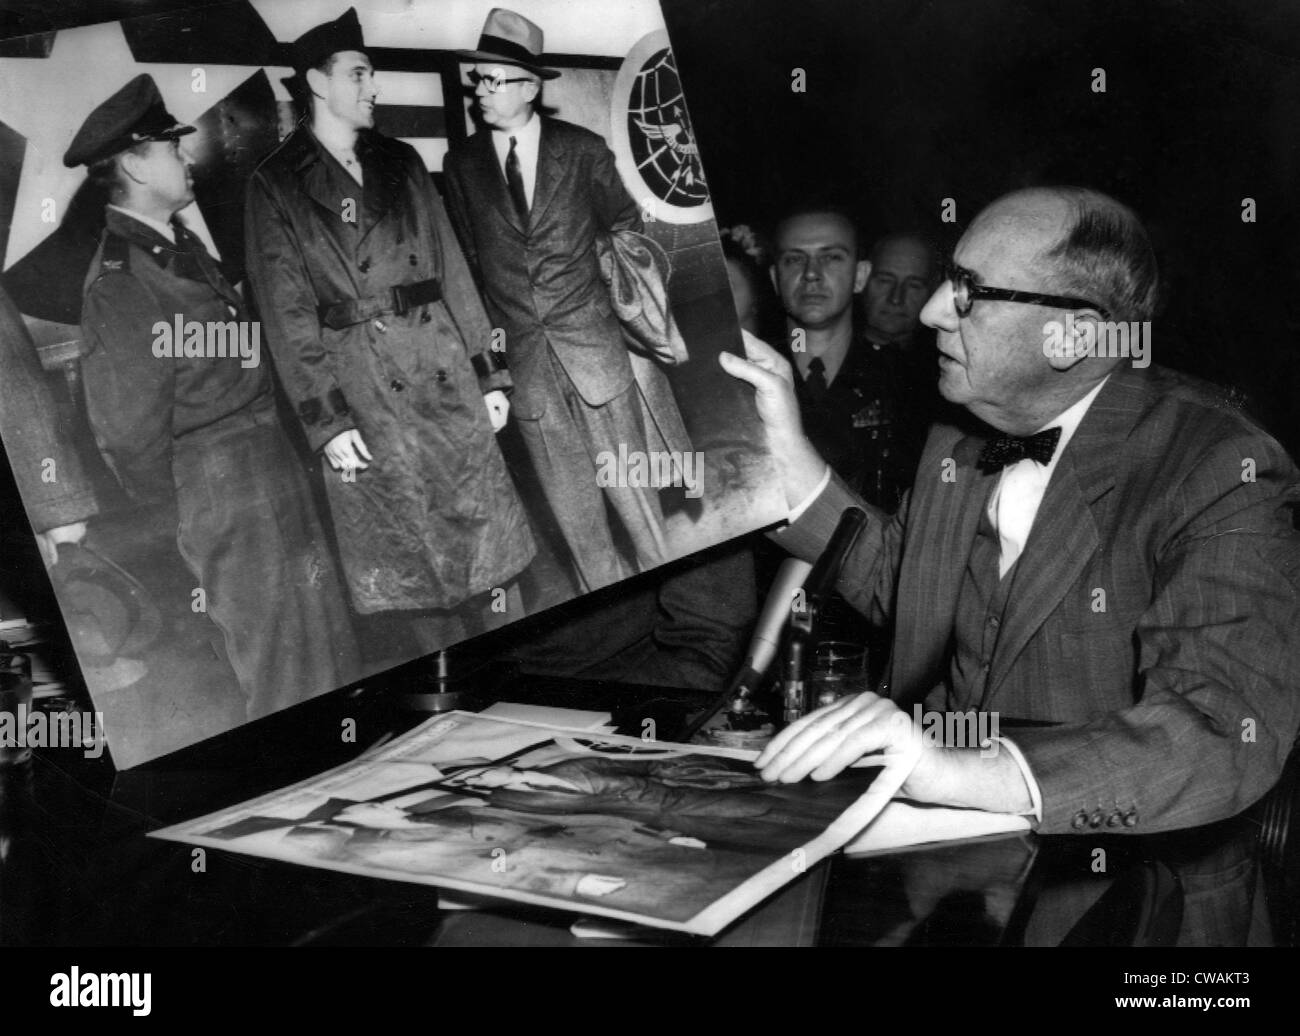 Joseph Welch examines doctored photo during McCarthy Hearings, April 27, 1954.. Courtesy: CSU Archives / Everett - Stock Image